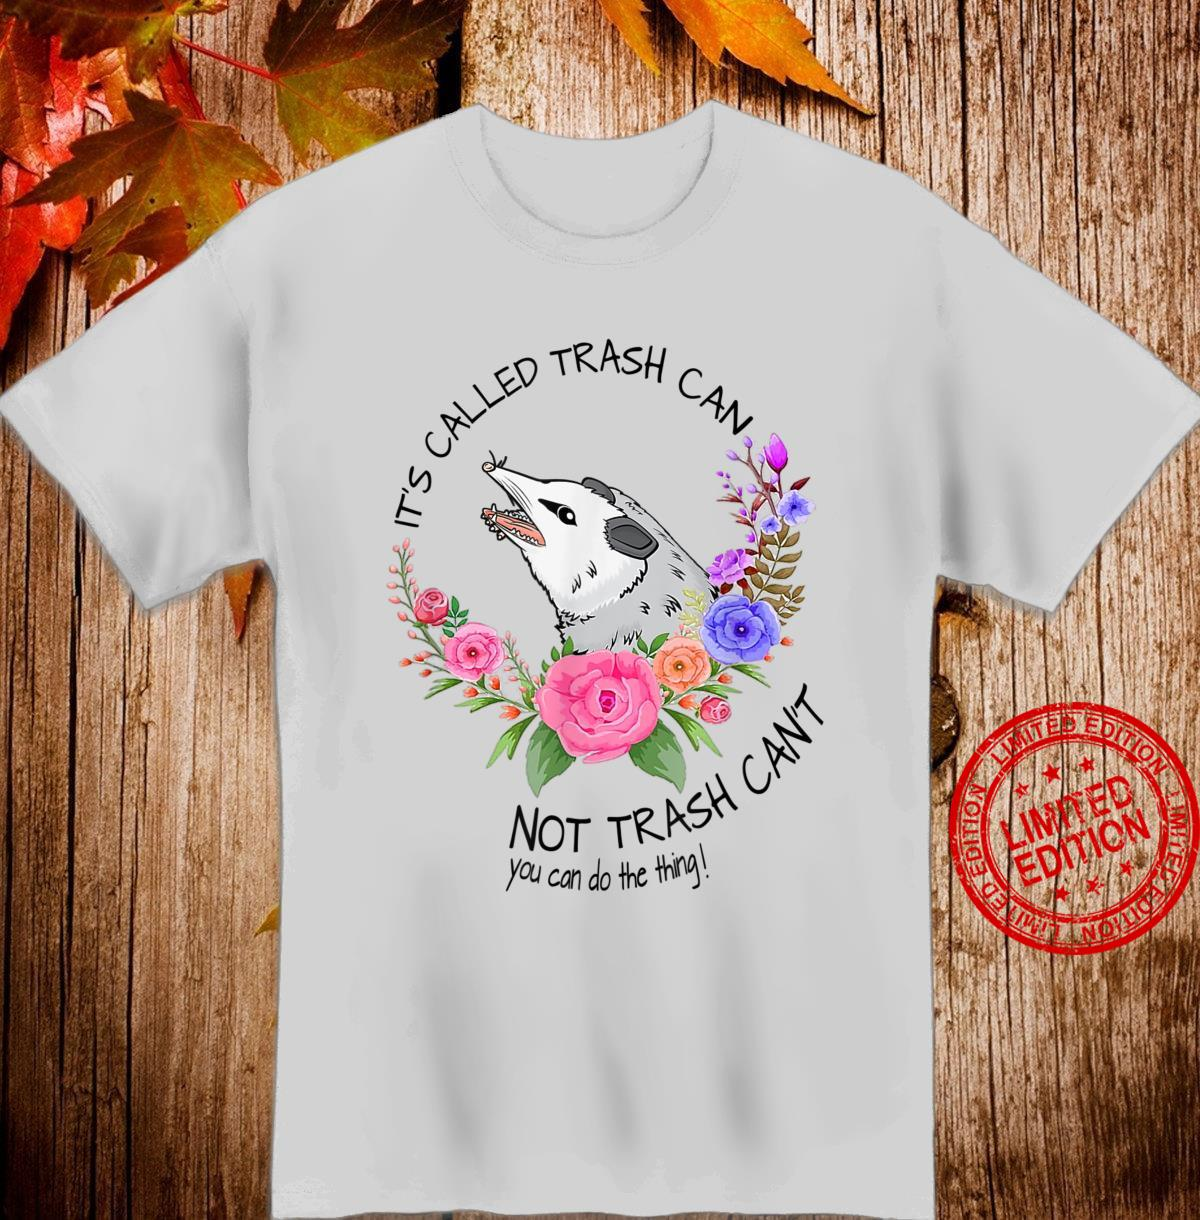 It's called trash can not trash can't Possum with flowers Shirt